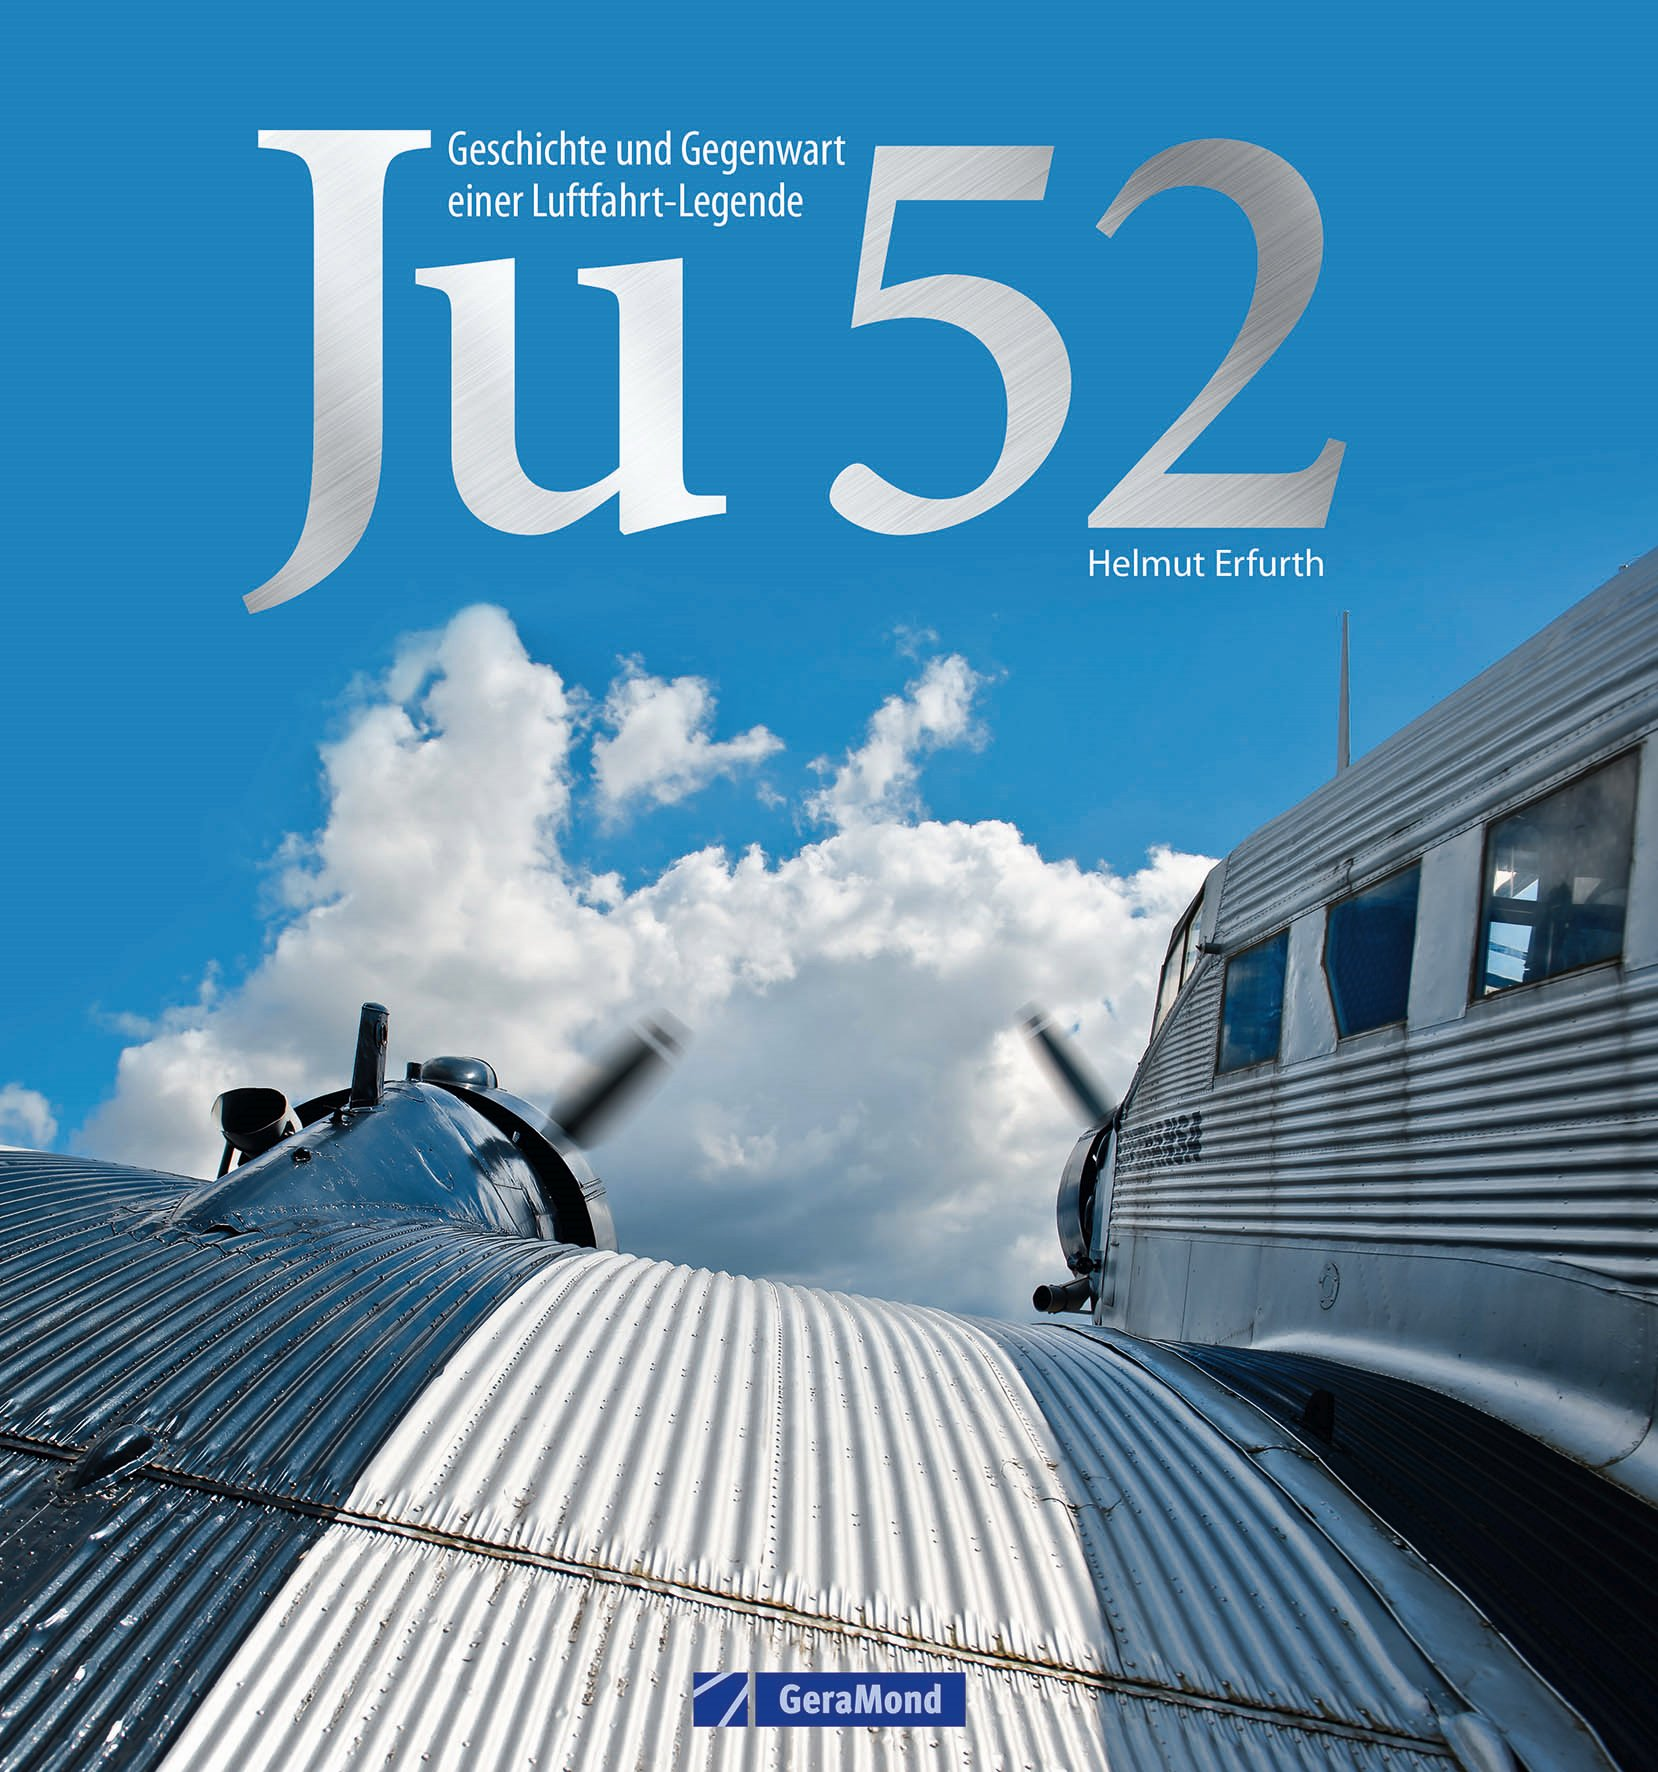 Book: Ju 52 - History and Presence of an Aviation Legend